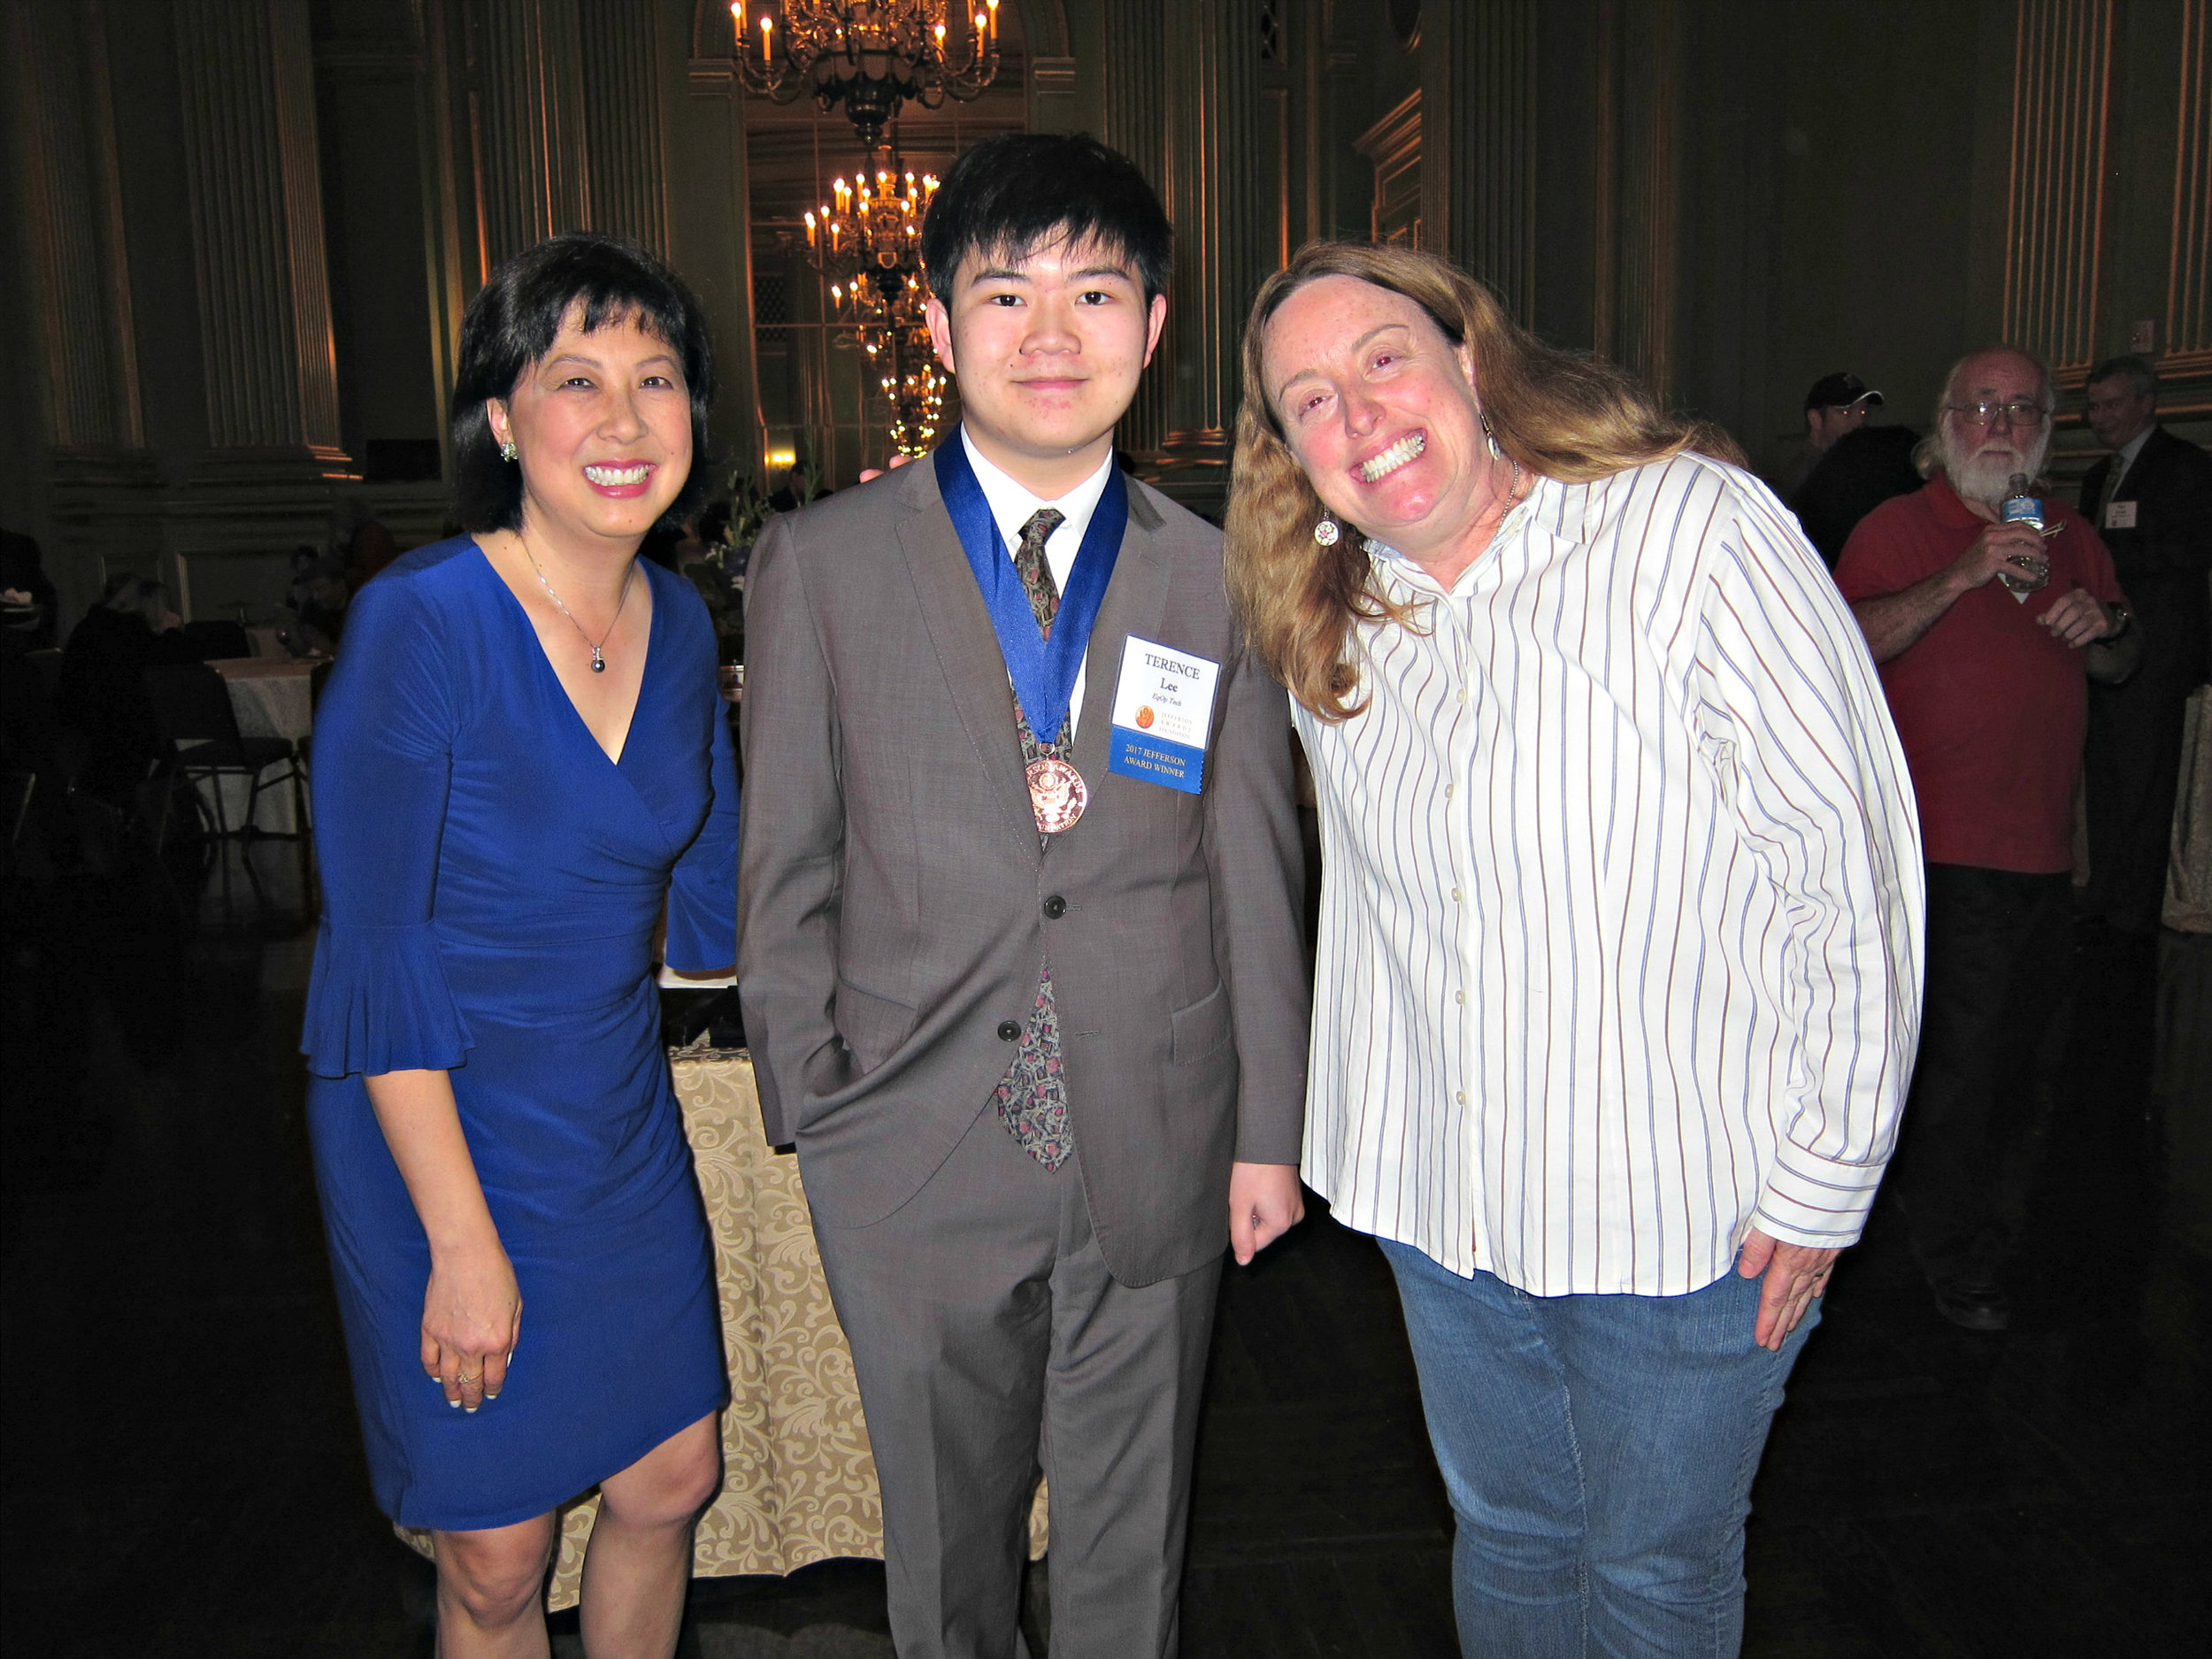 Terence Lee, center, wearing his Jefferson Award Medal, is flanked by CBS KPIX, Sharon Chin, left, and Jennifer Mistrot